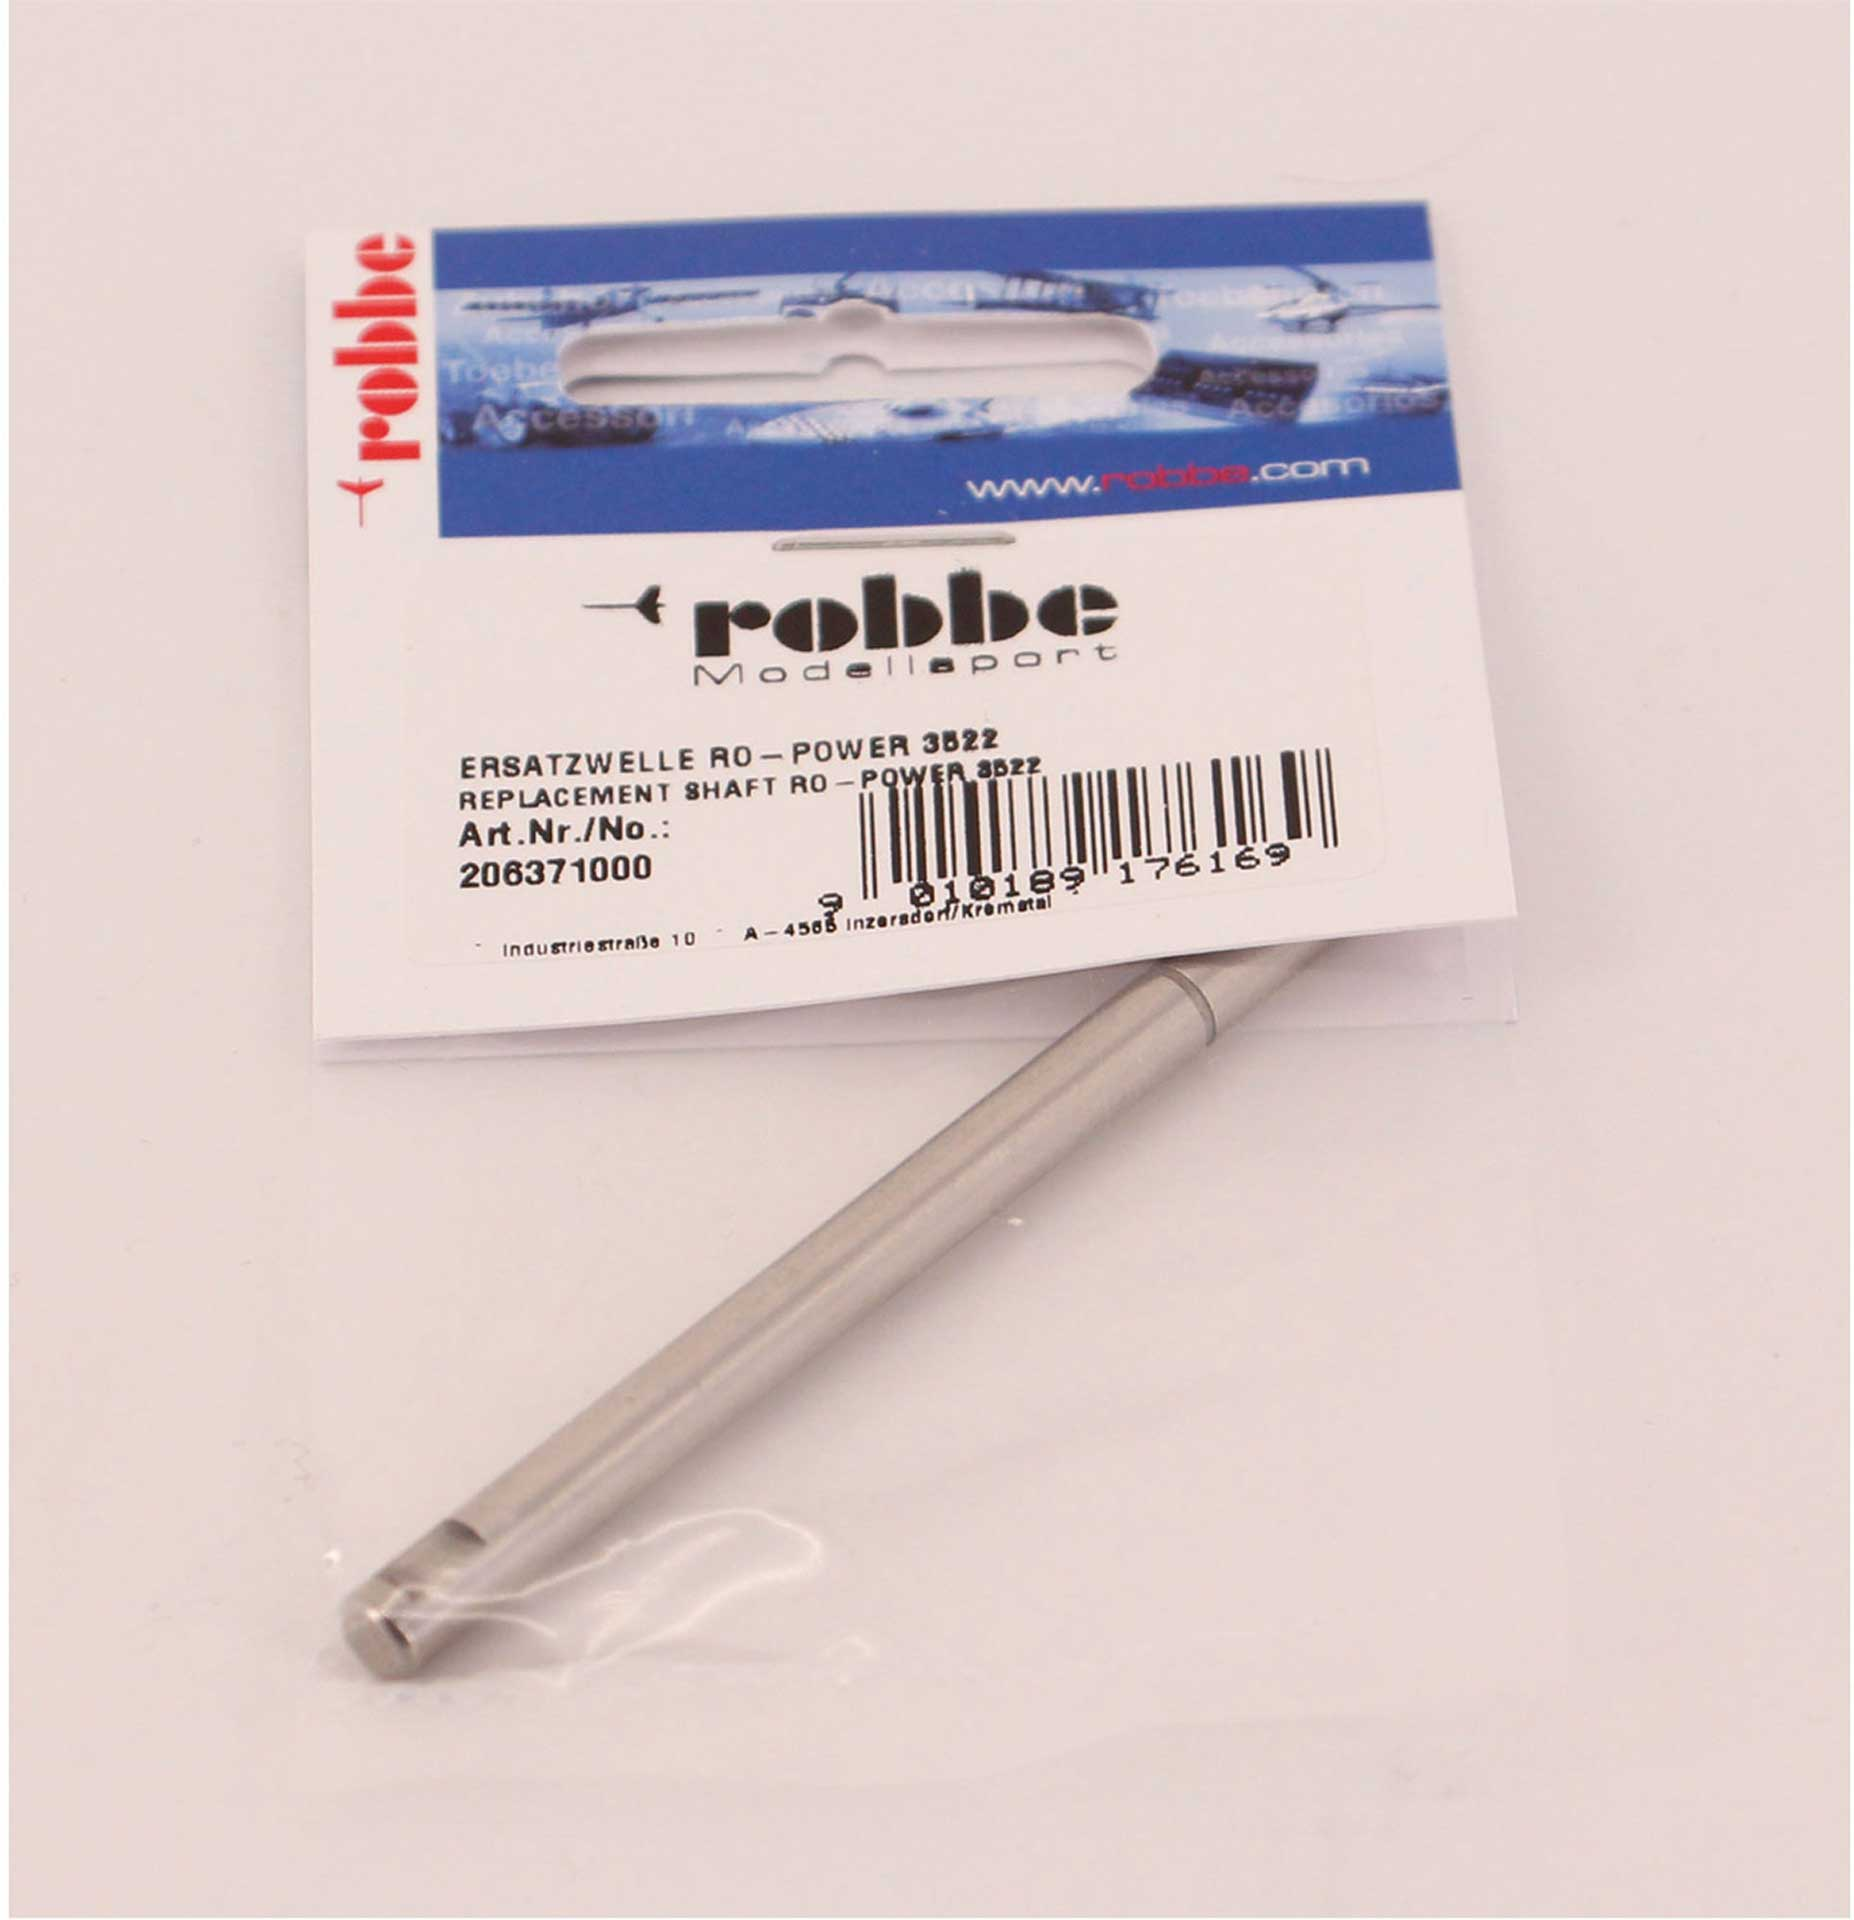 Robbe Modellsport REPLACEMENT SHAFT RO-POWER 3522